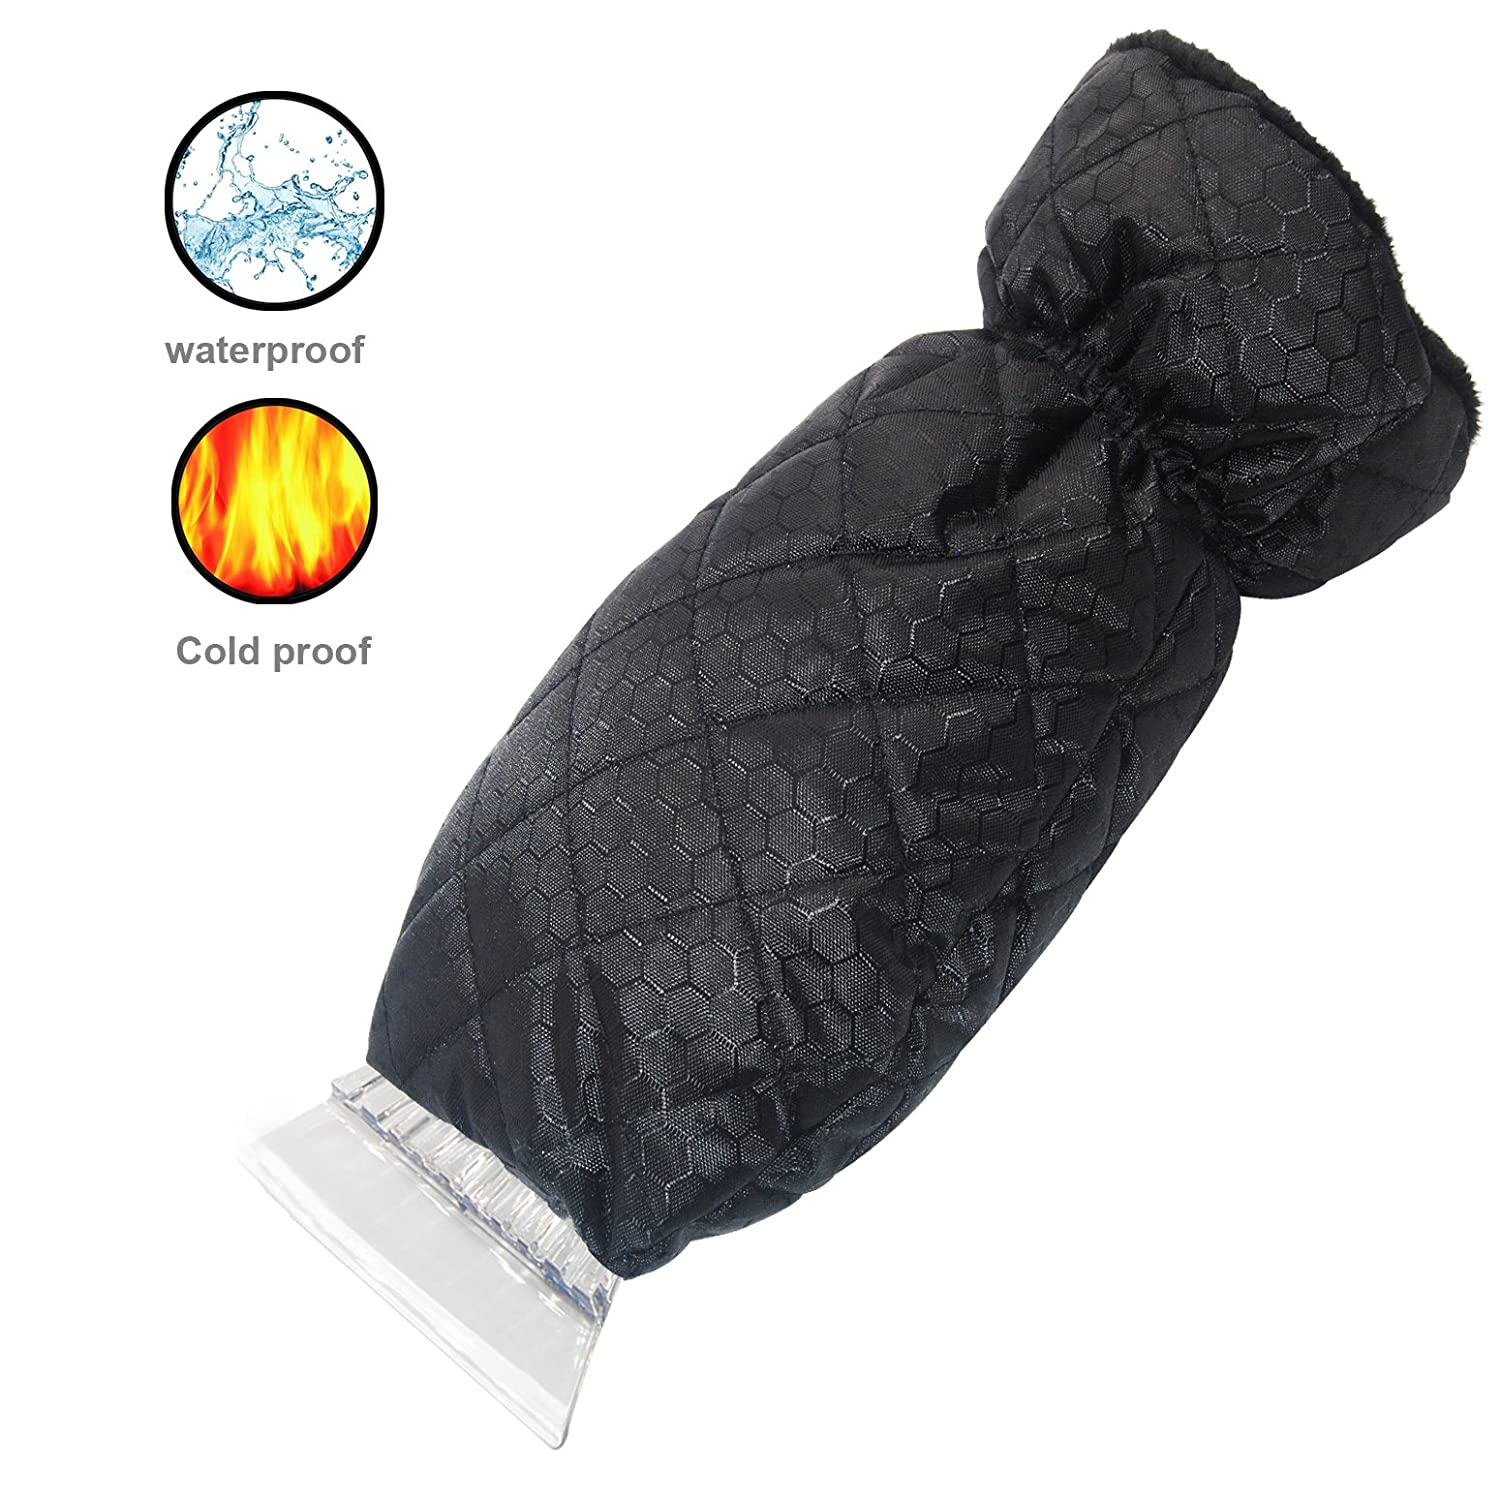 ZFZOO Ice Scraper Mitt Windshield Snow Scrapers with Waterproof Snow Remover Glove Lined of Qualited Fleece for Car (Black)